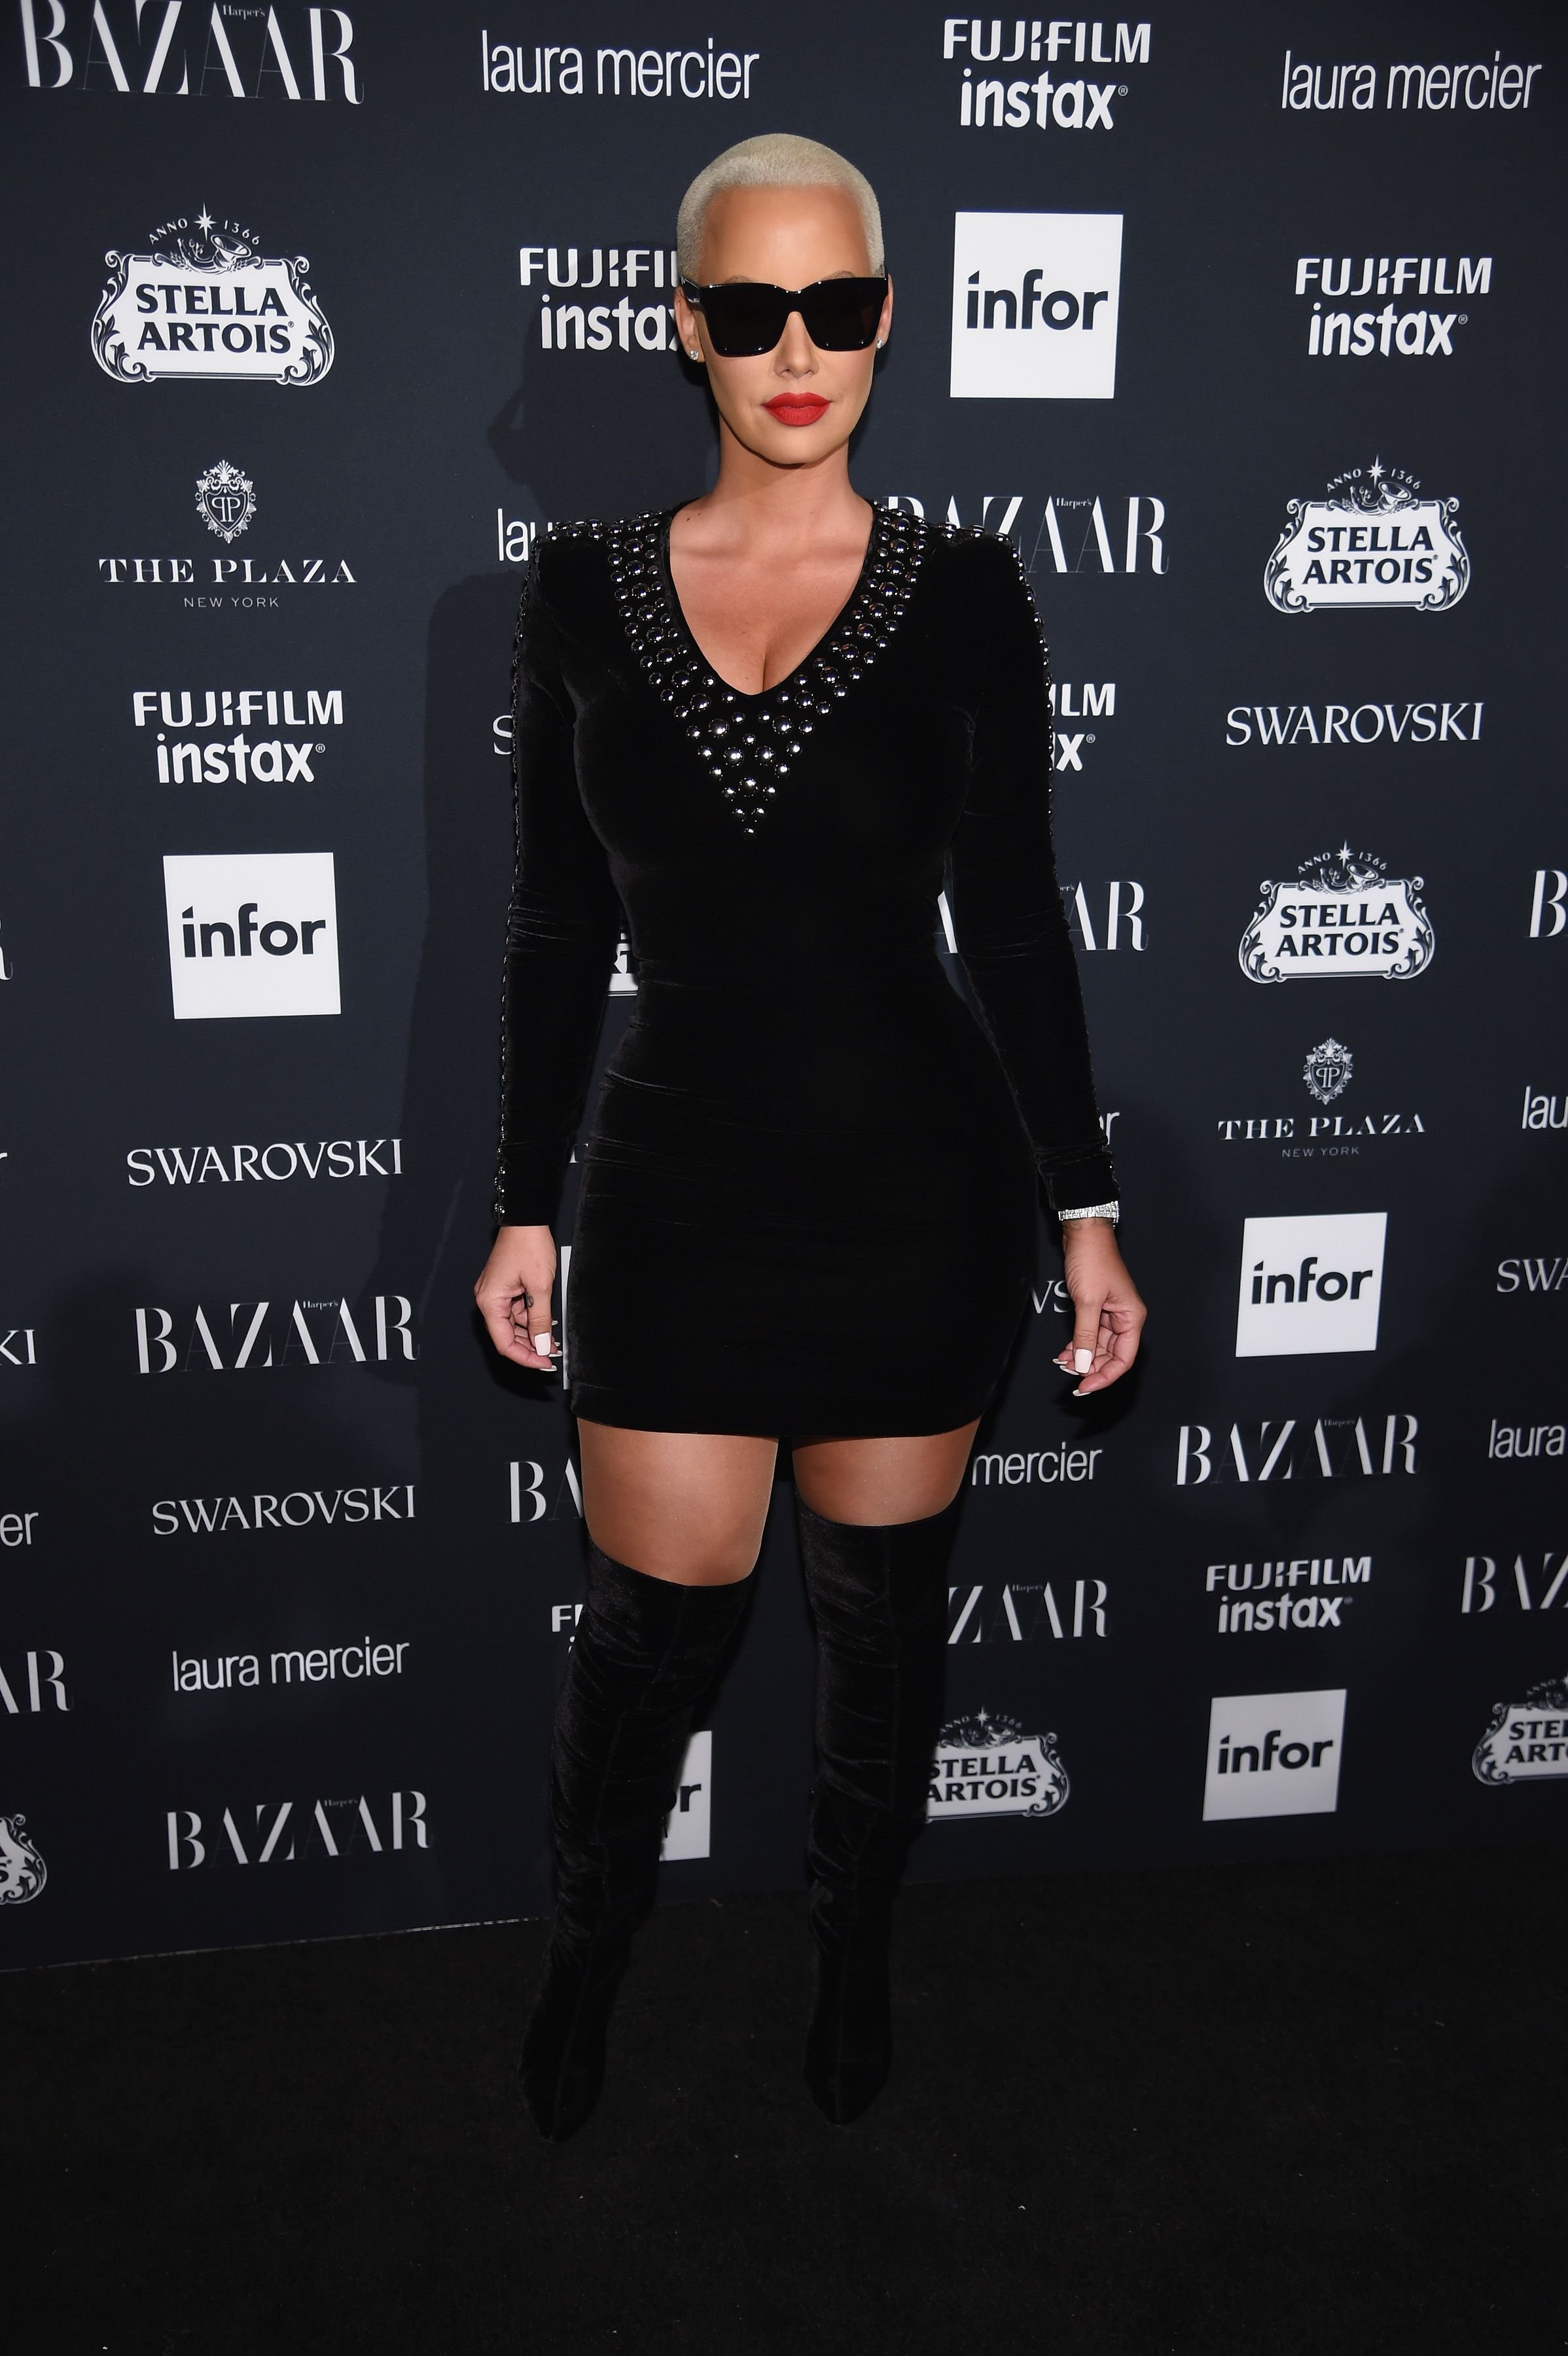 """Rose attends Harper's BAZAAR Celebration of """"ICONS By Carine Roitfeld"""" at The Plaza Hotel presented by Infor, Laura Mercier, Stella Artois, FUJIFILM and SWAROVSKI on September 8, 2017 in New York City. 